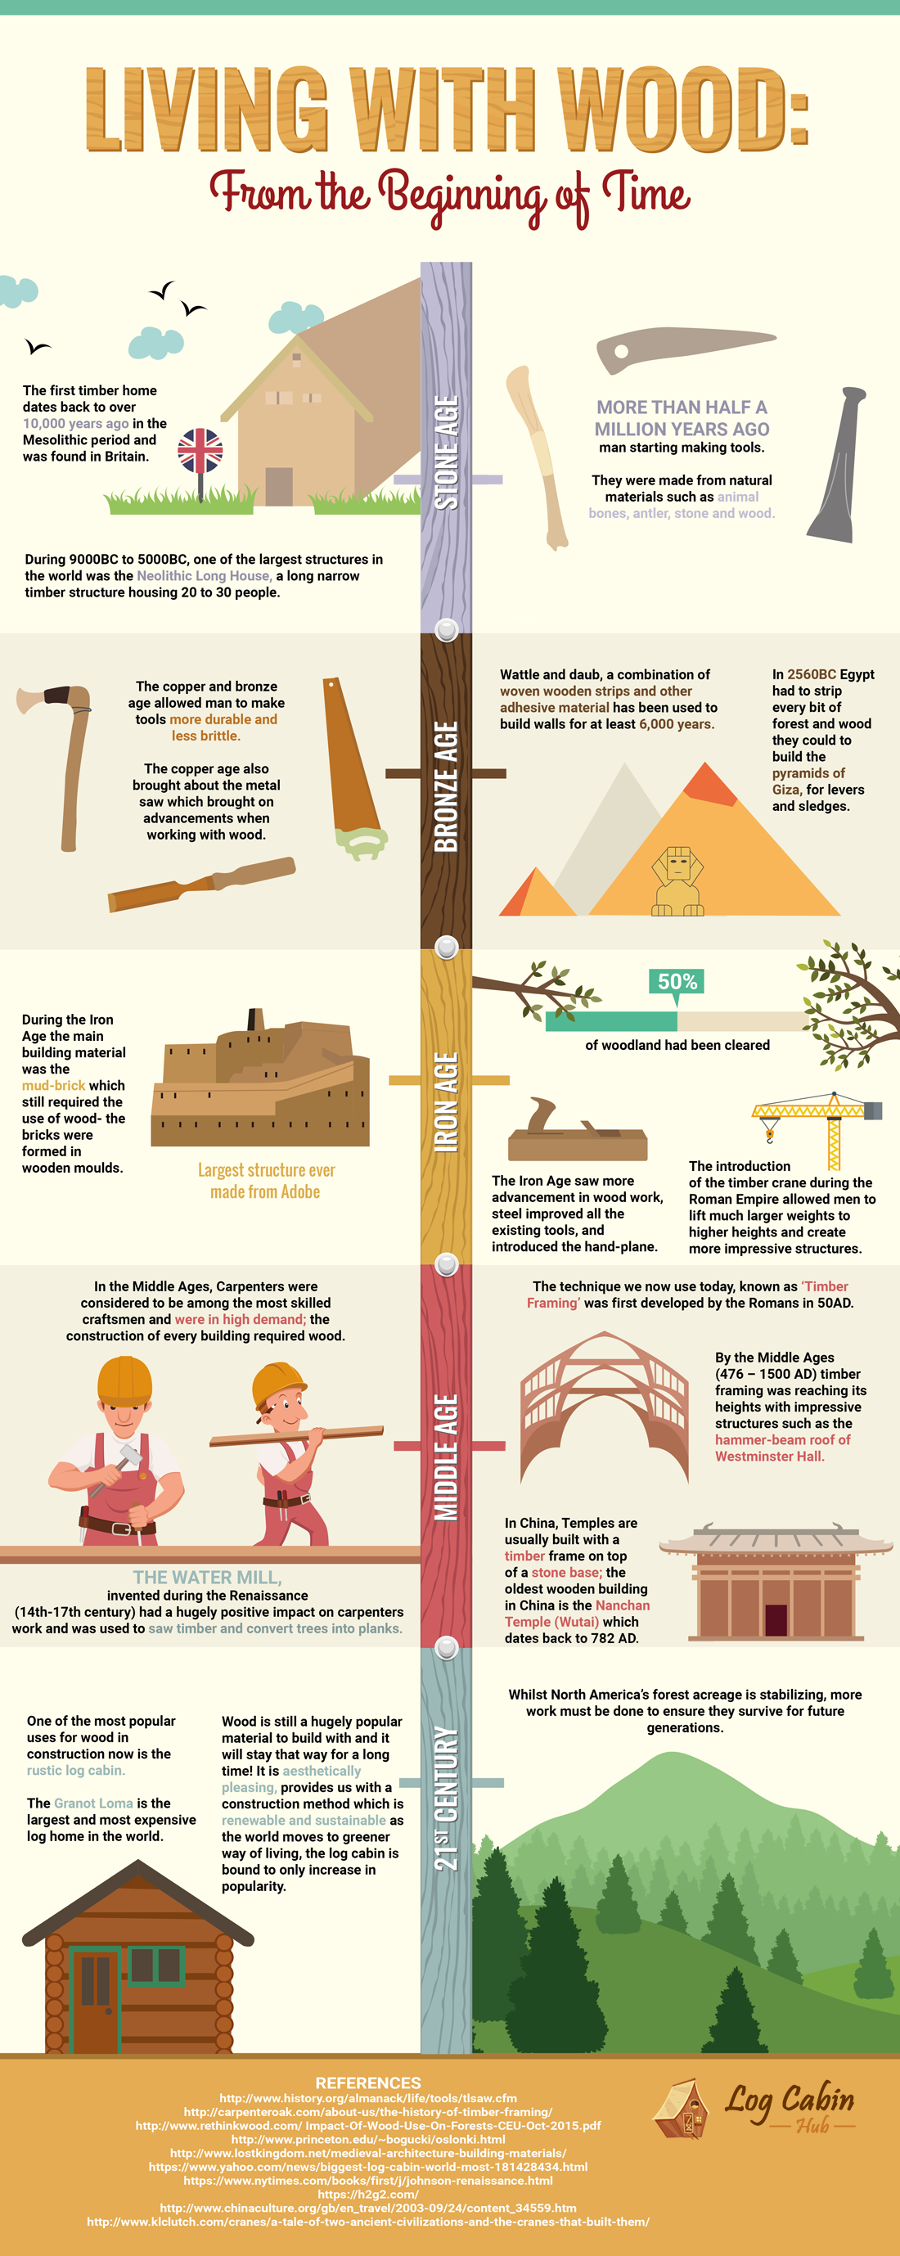 Living with wood history infographic